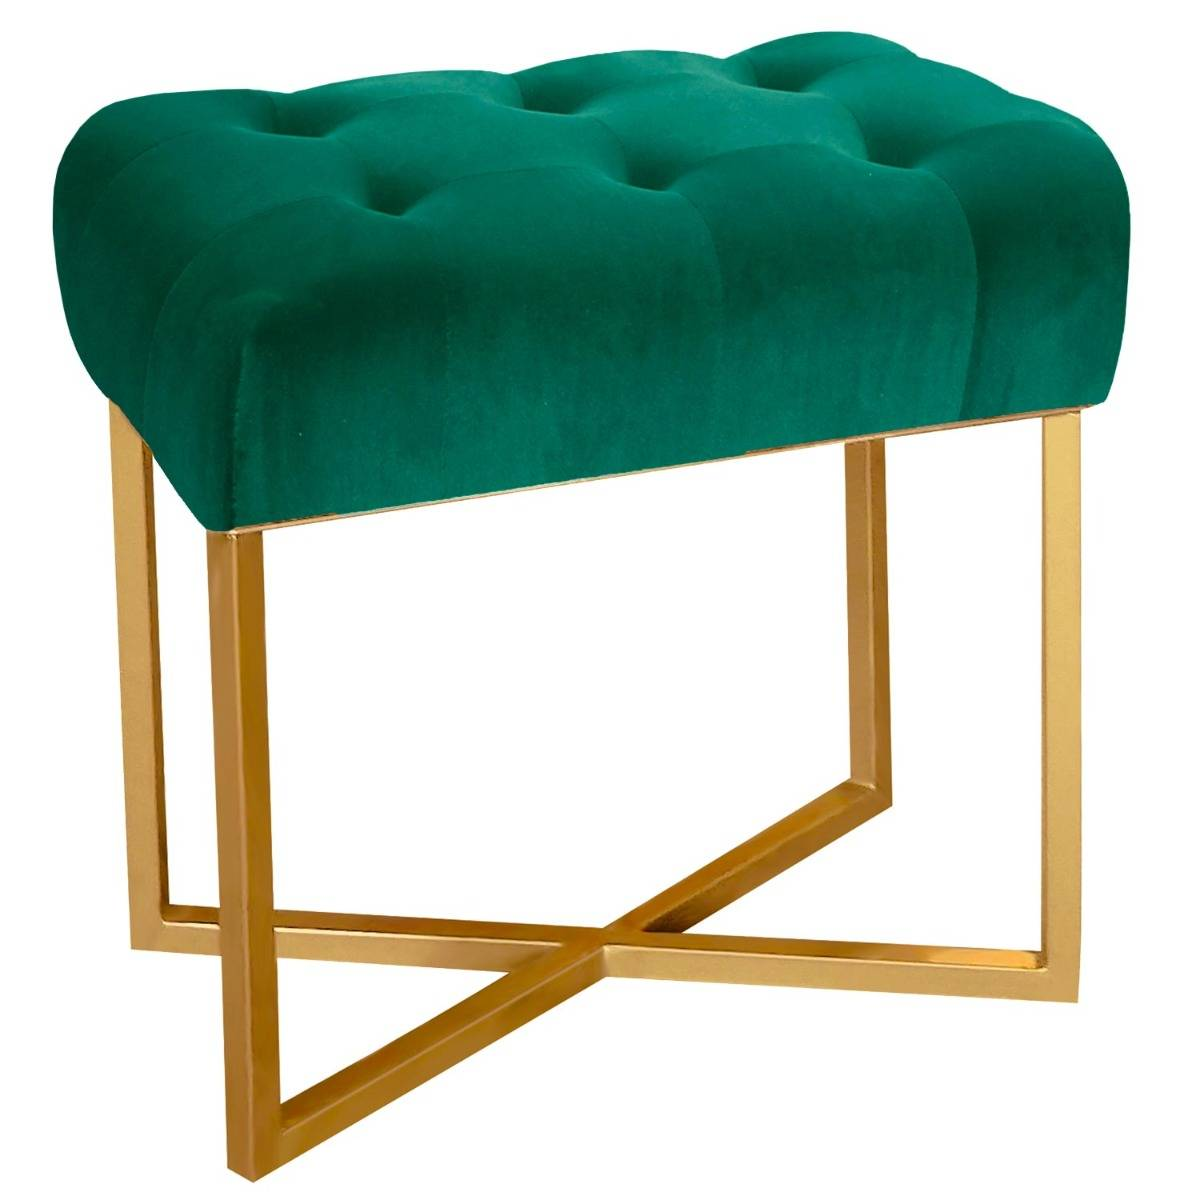 Tabouret pouf rectangle  velours vert pied or